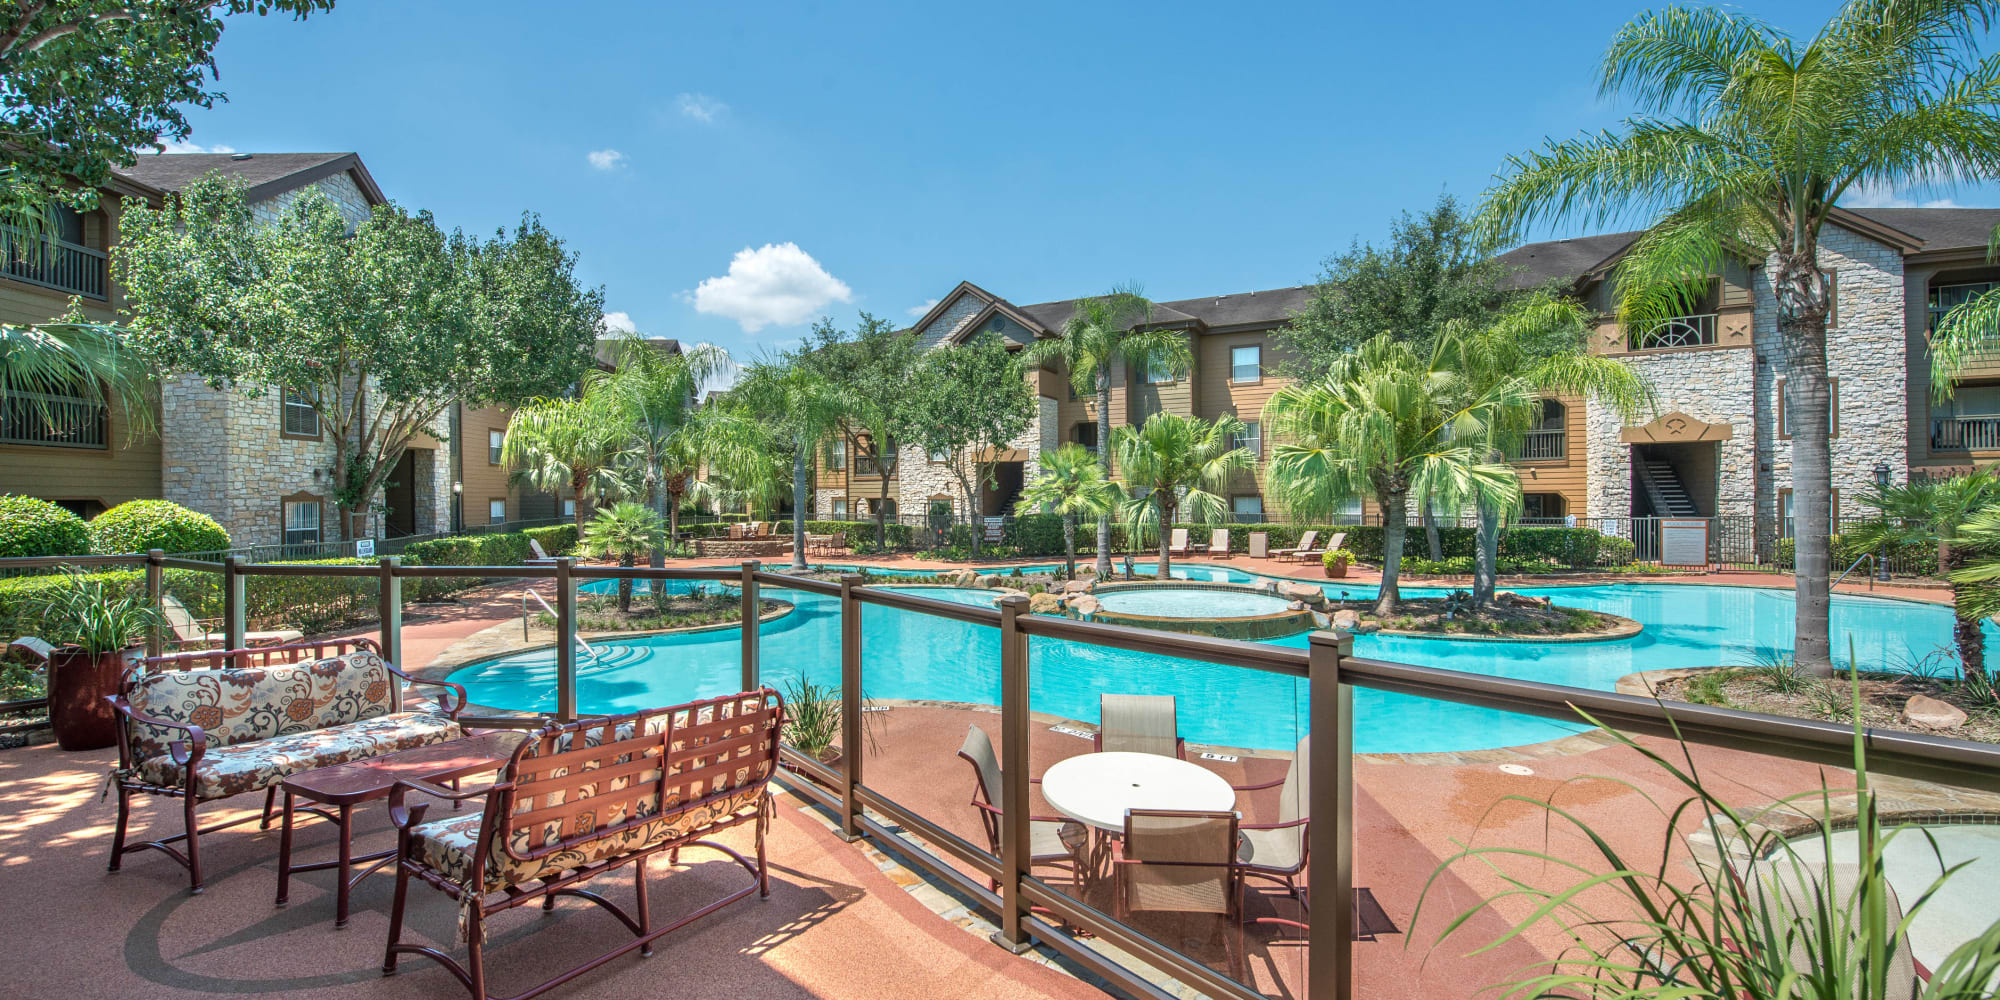 The Ranch at Shadow Lake apartments in Houston, Texas